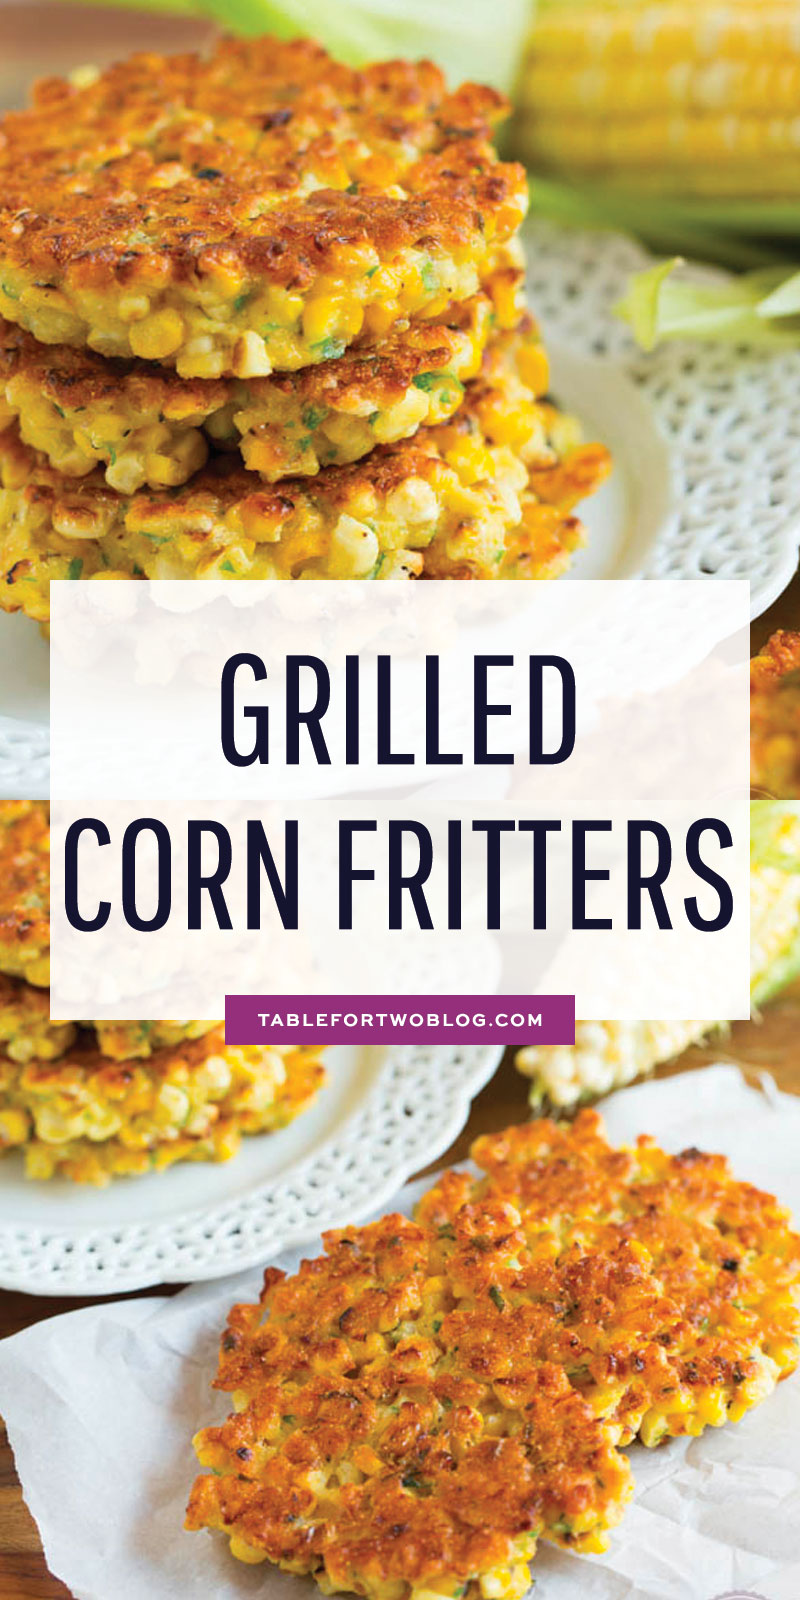 Grilled corn fritters are a great way to use your grilled corn! These little cakes are so easy to put together! Click for recipe. #corn #cornrecipes #cornfritters #fritters #corncake